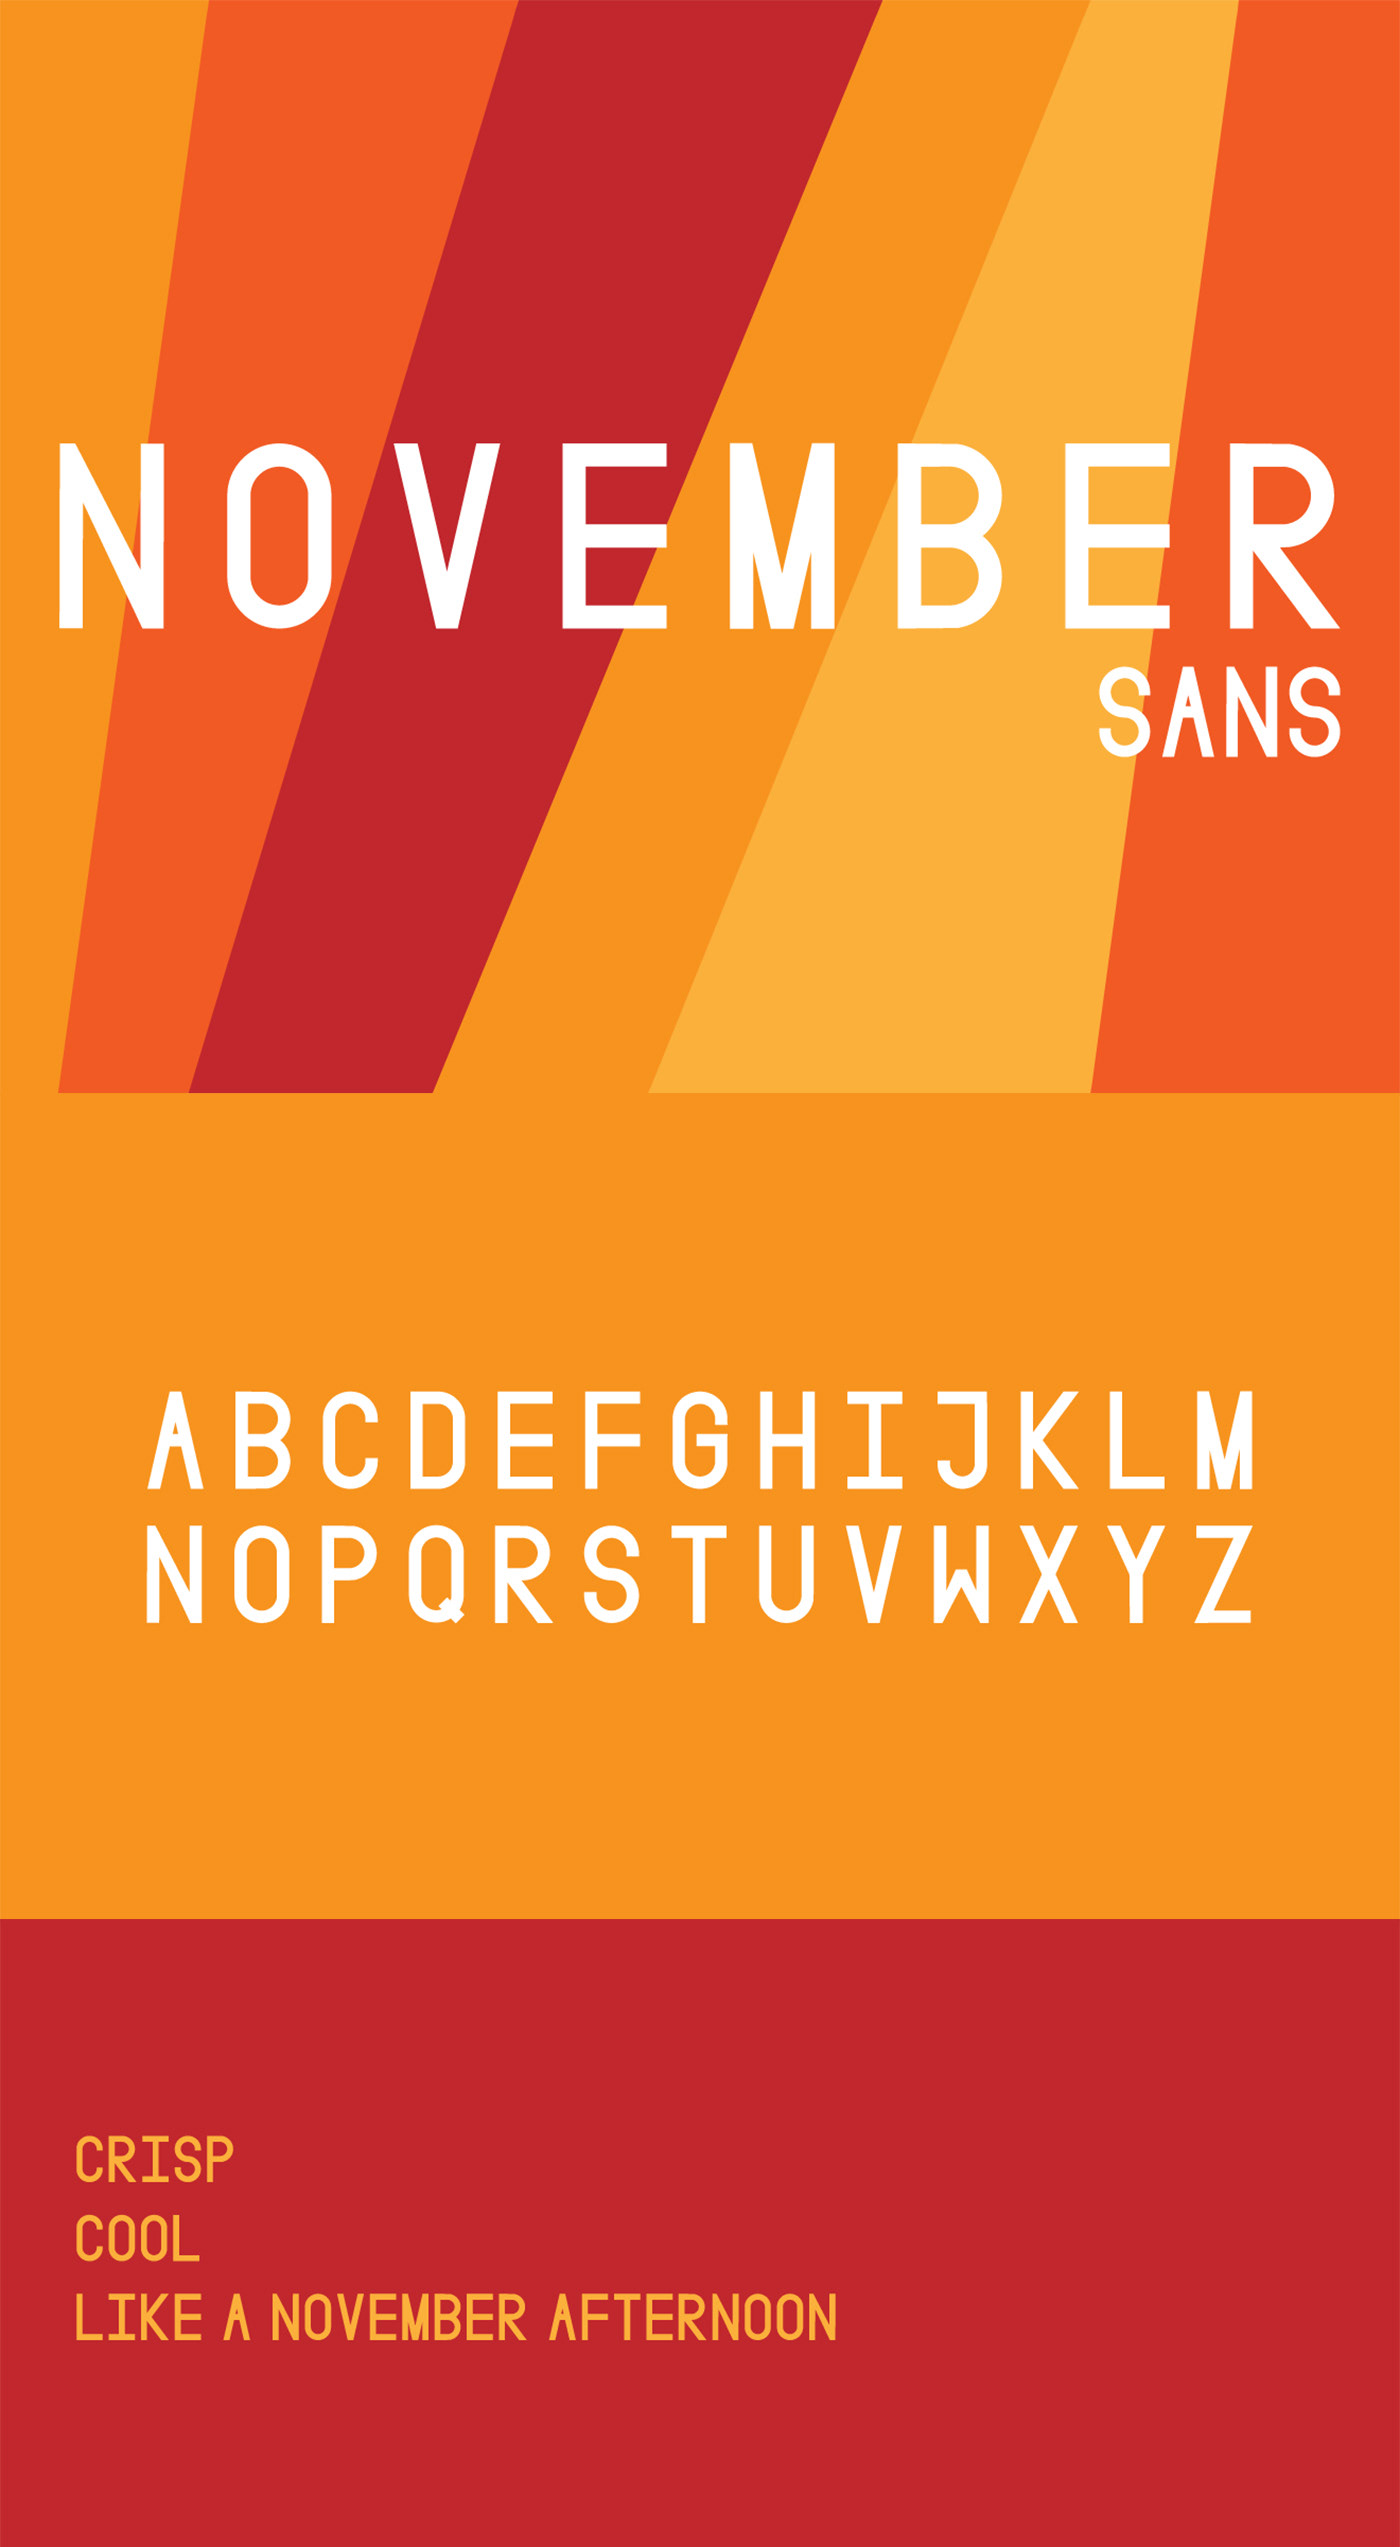 Free November Sans Display Font is crisp and cool like a november afternoon. It contains all caps.